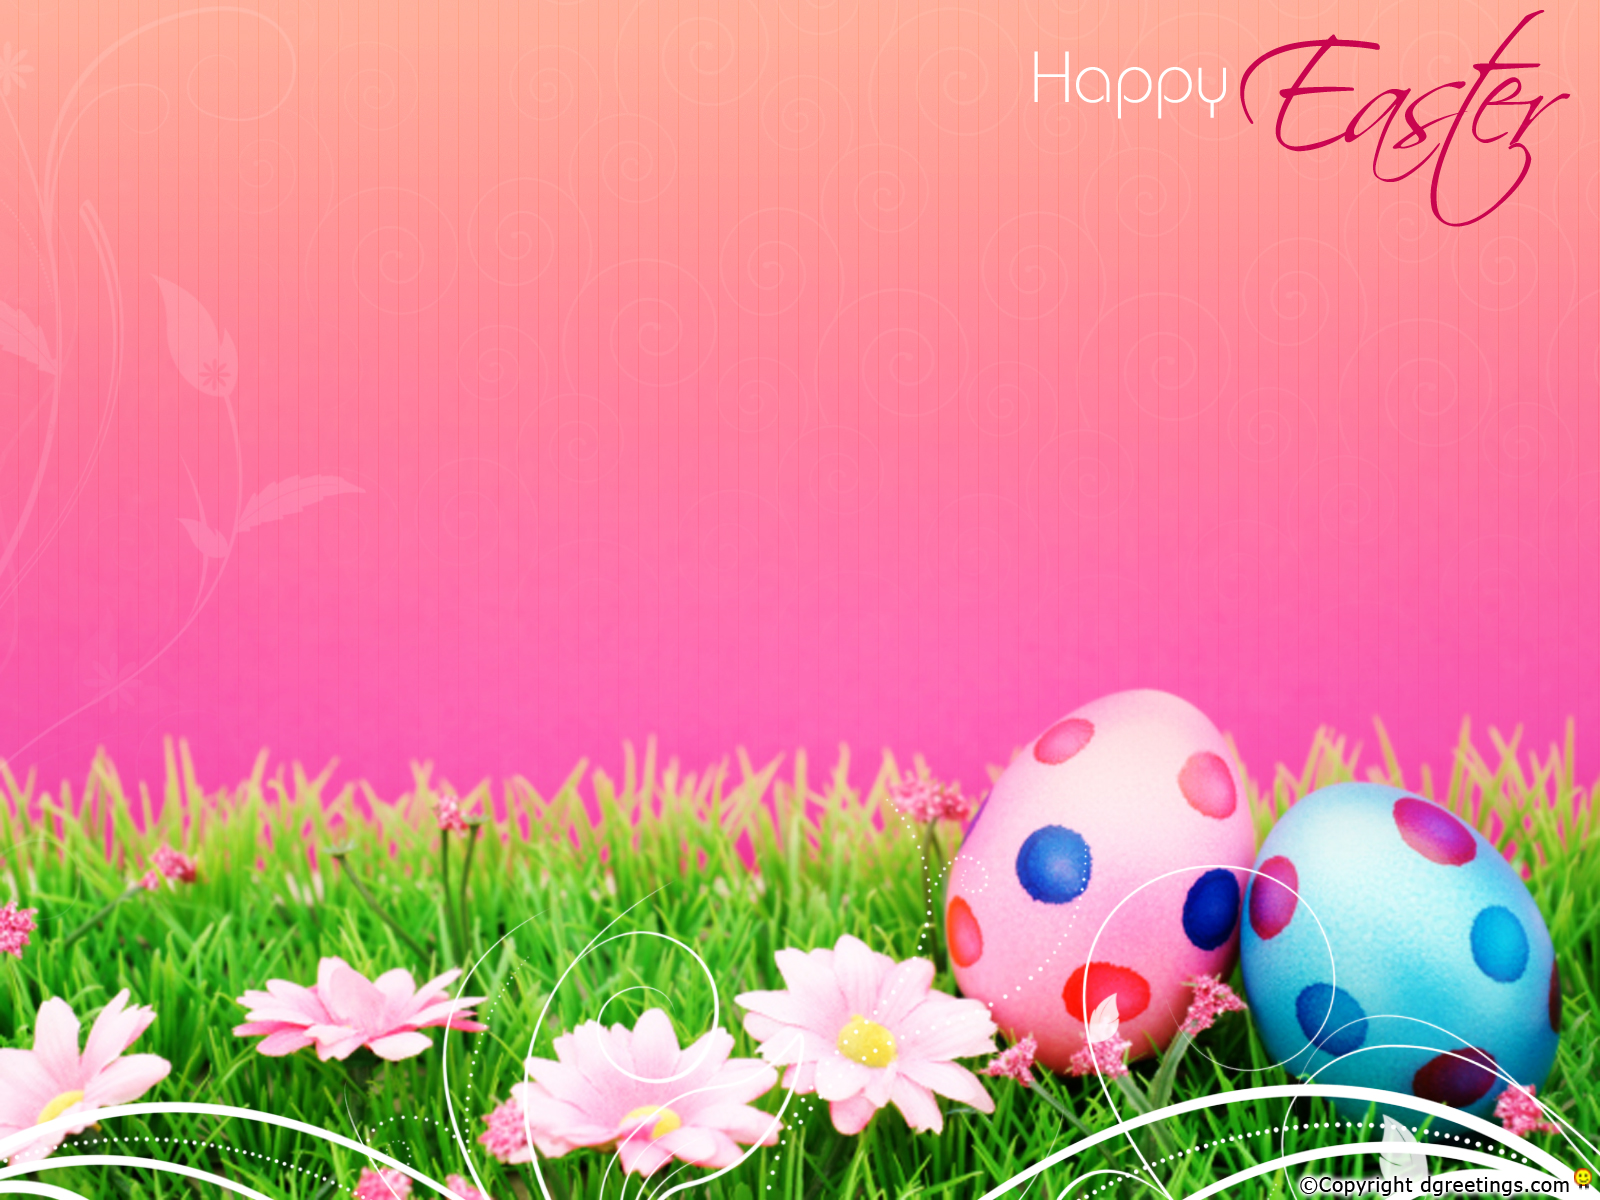 Christian easter desktop wallpaper wallpapersafari - Christian easter images free ...